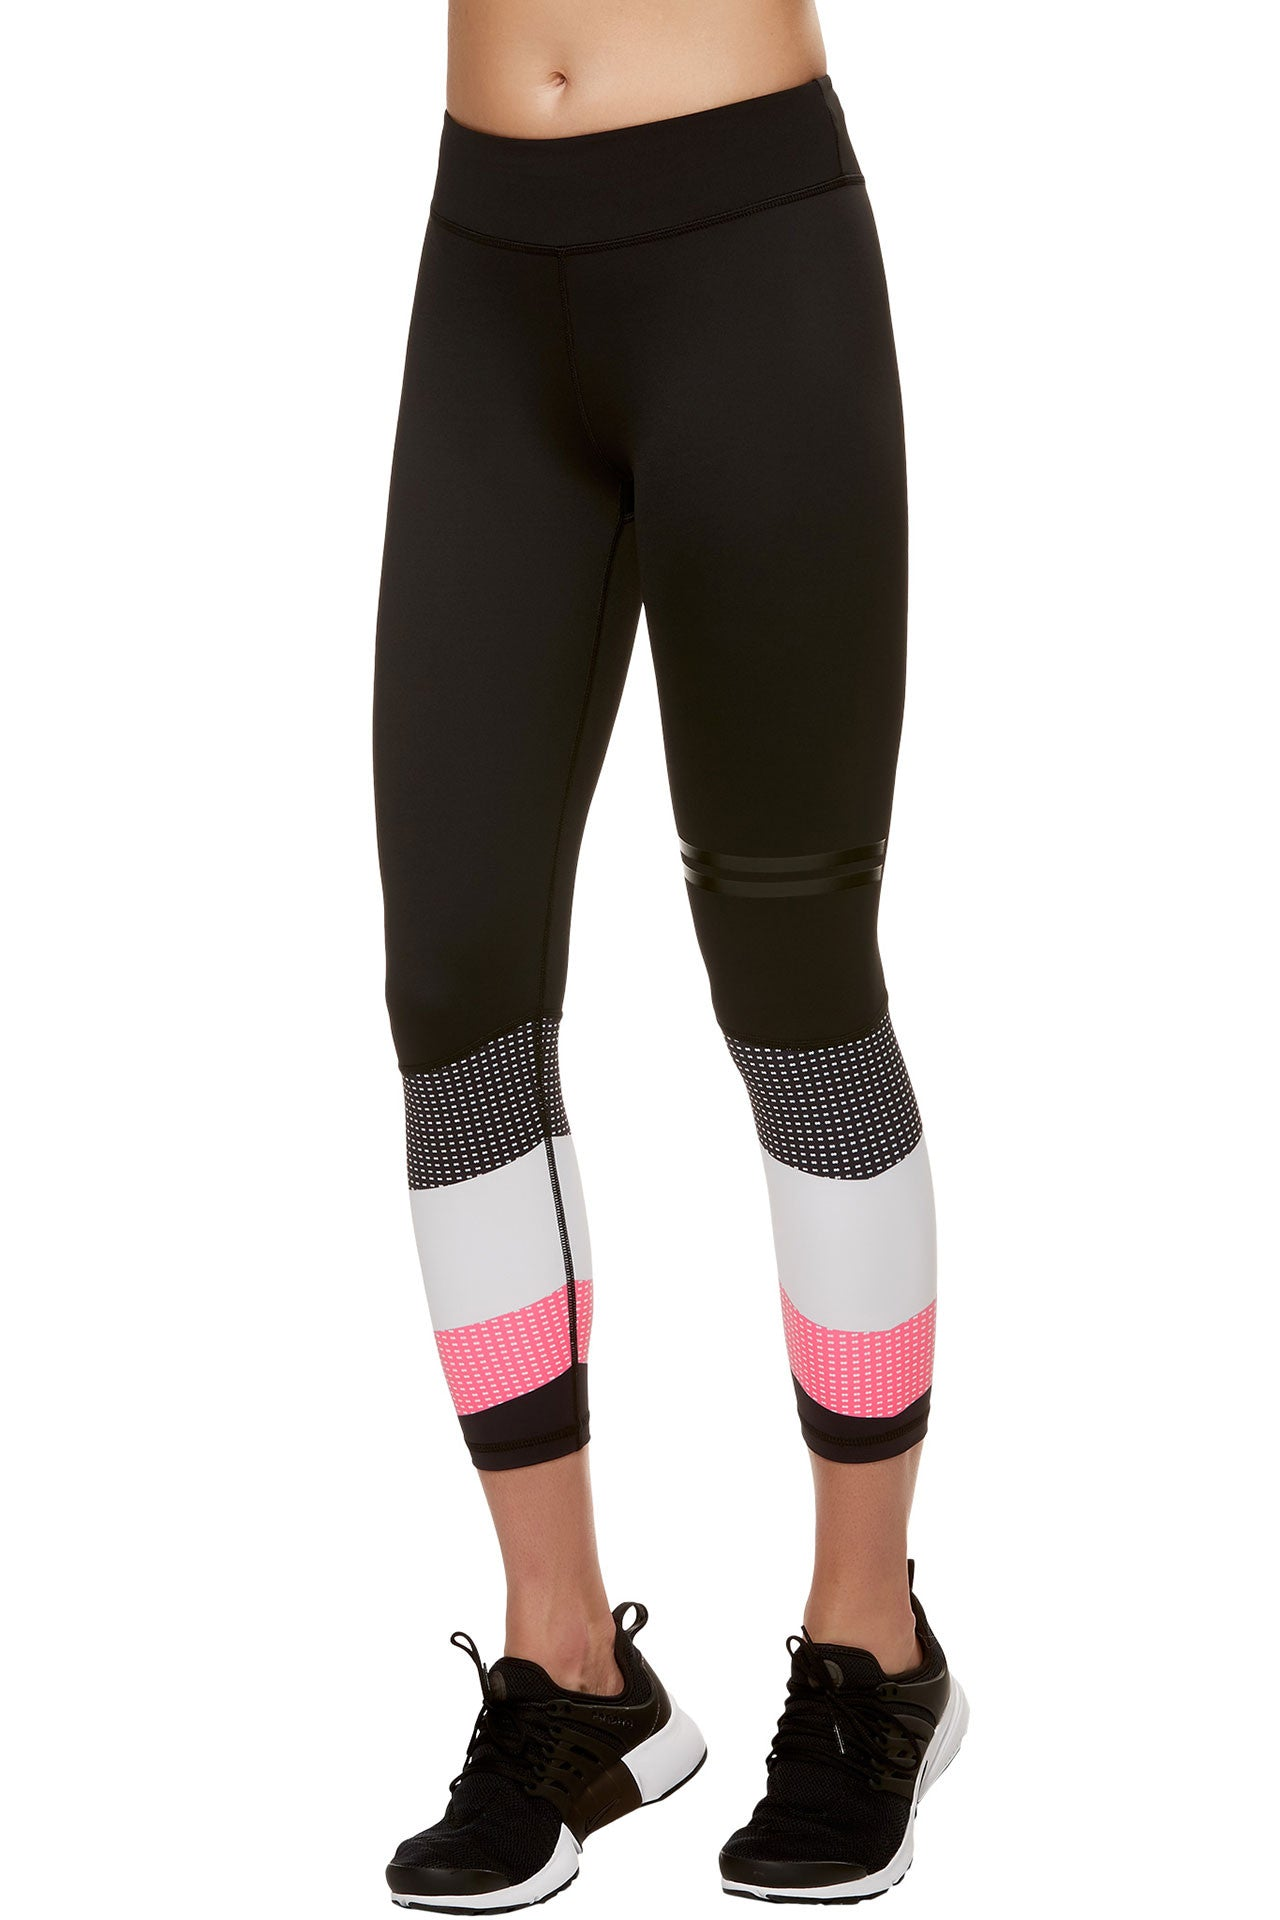 Lilybod Skyler Legging - Sunkist Fury - Sculptique